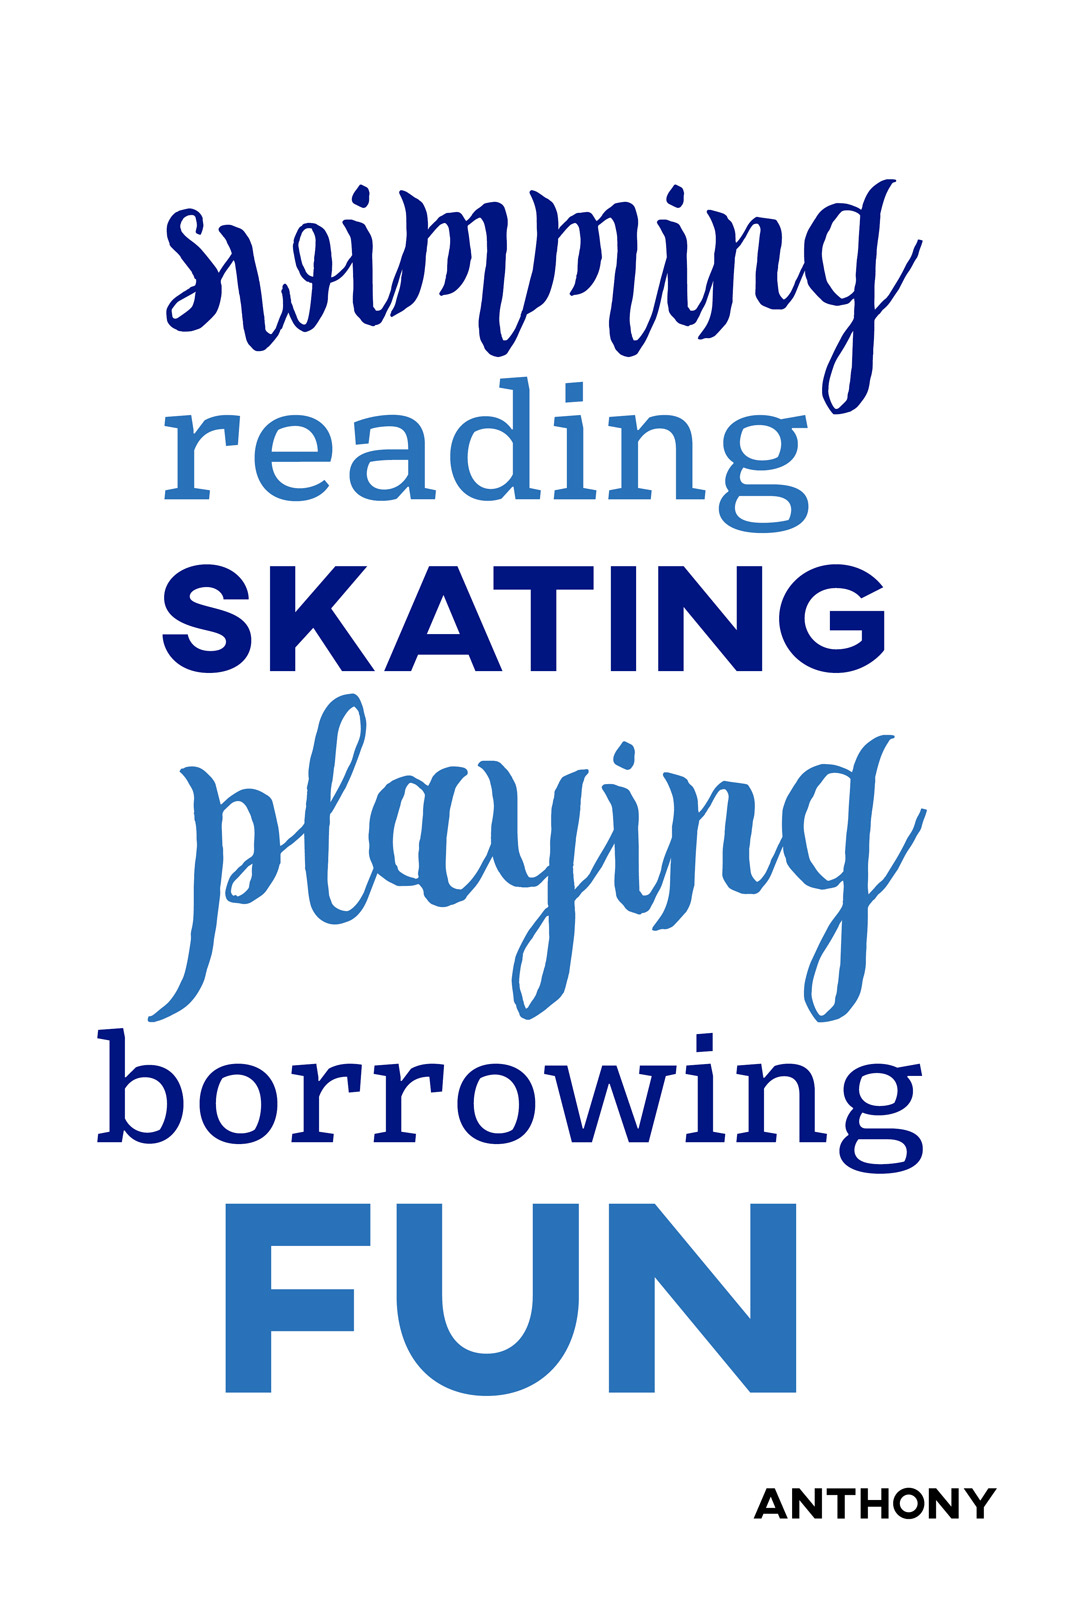 Swimming, Reading, Skating, Playing, Borrowing Fun